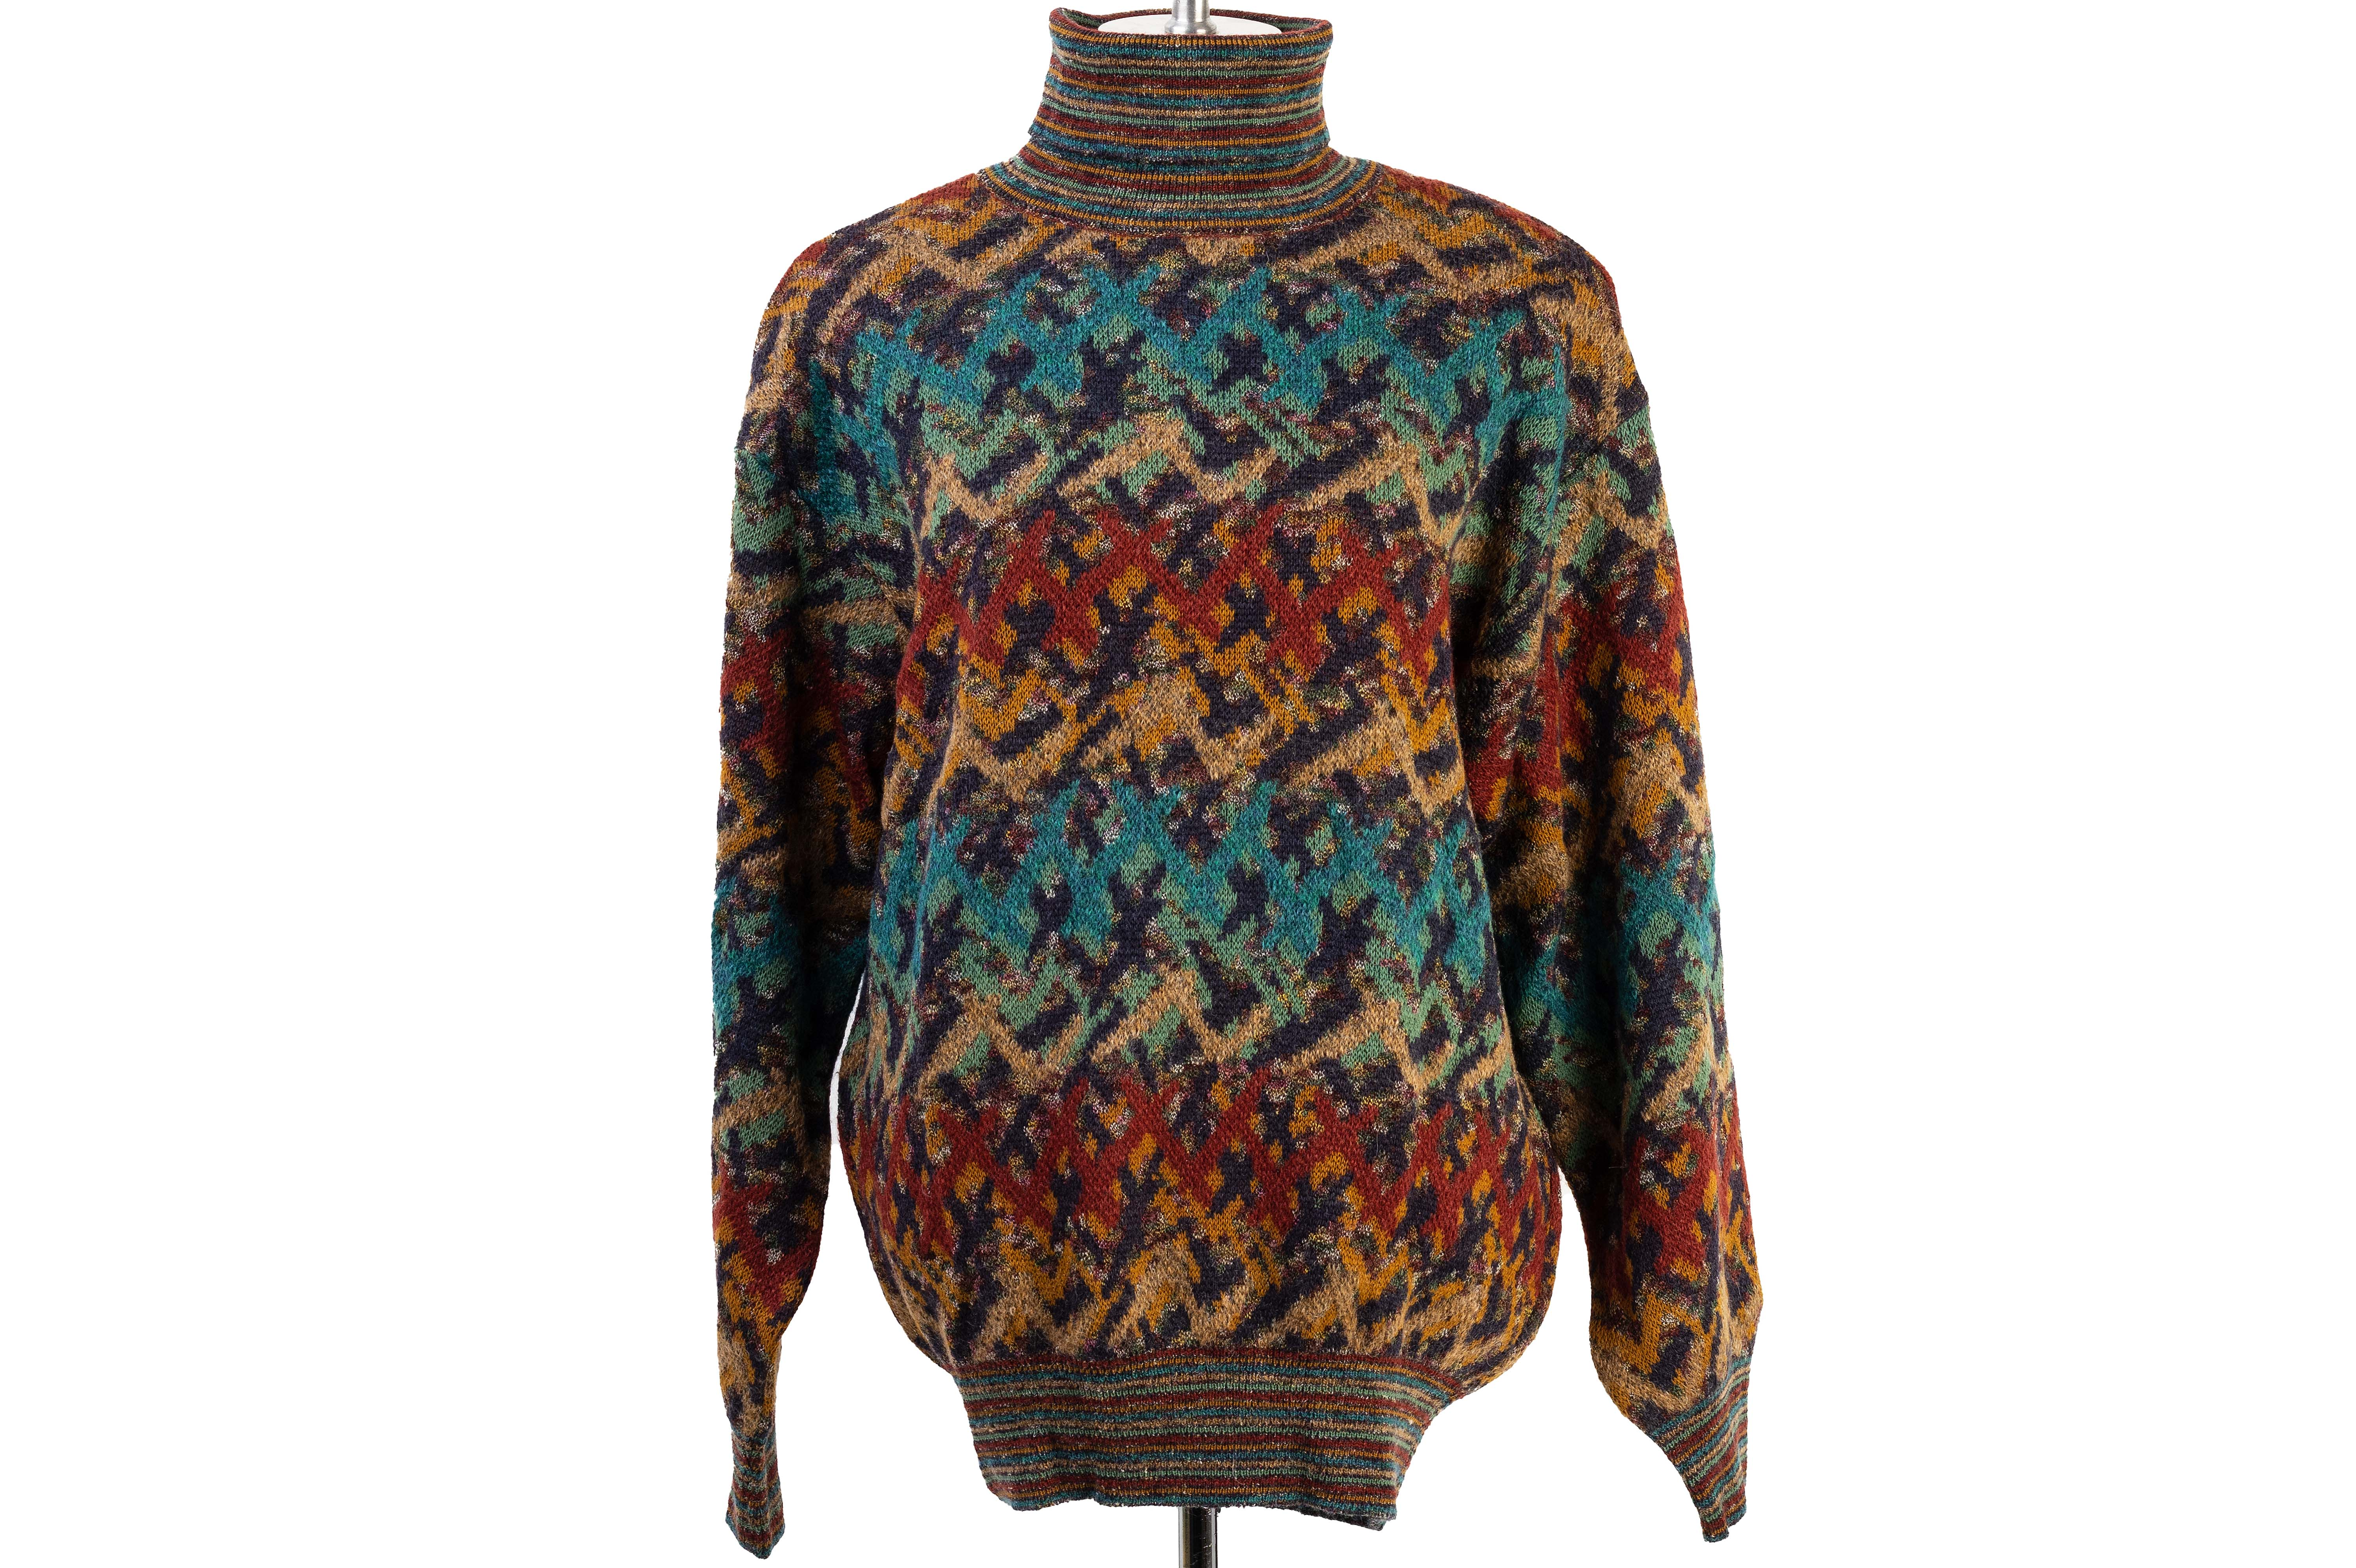 A MISSONI SPORT KNITTED ROLLNECK SWEATER